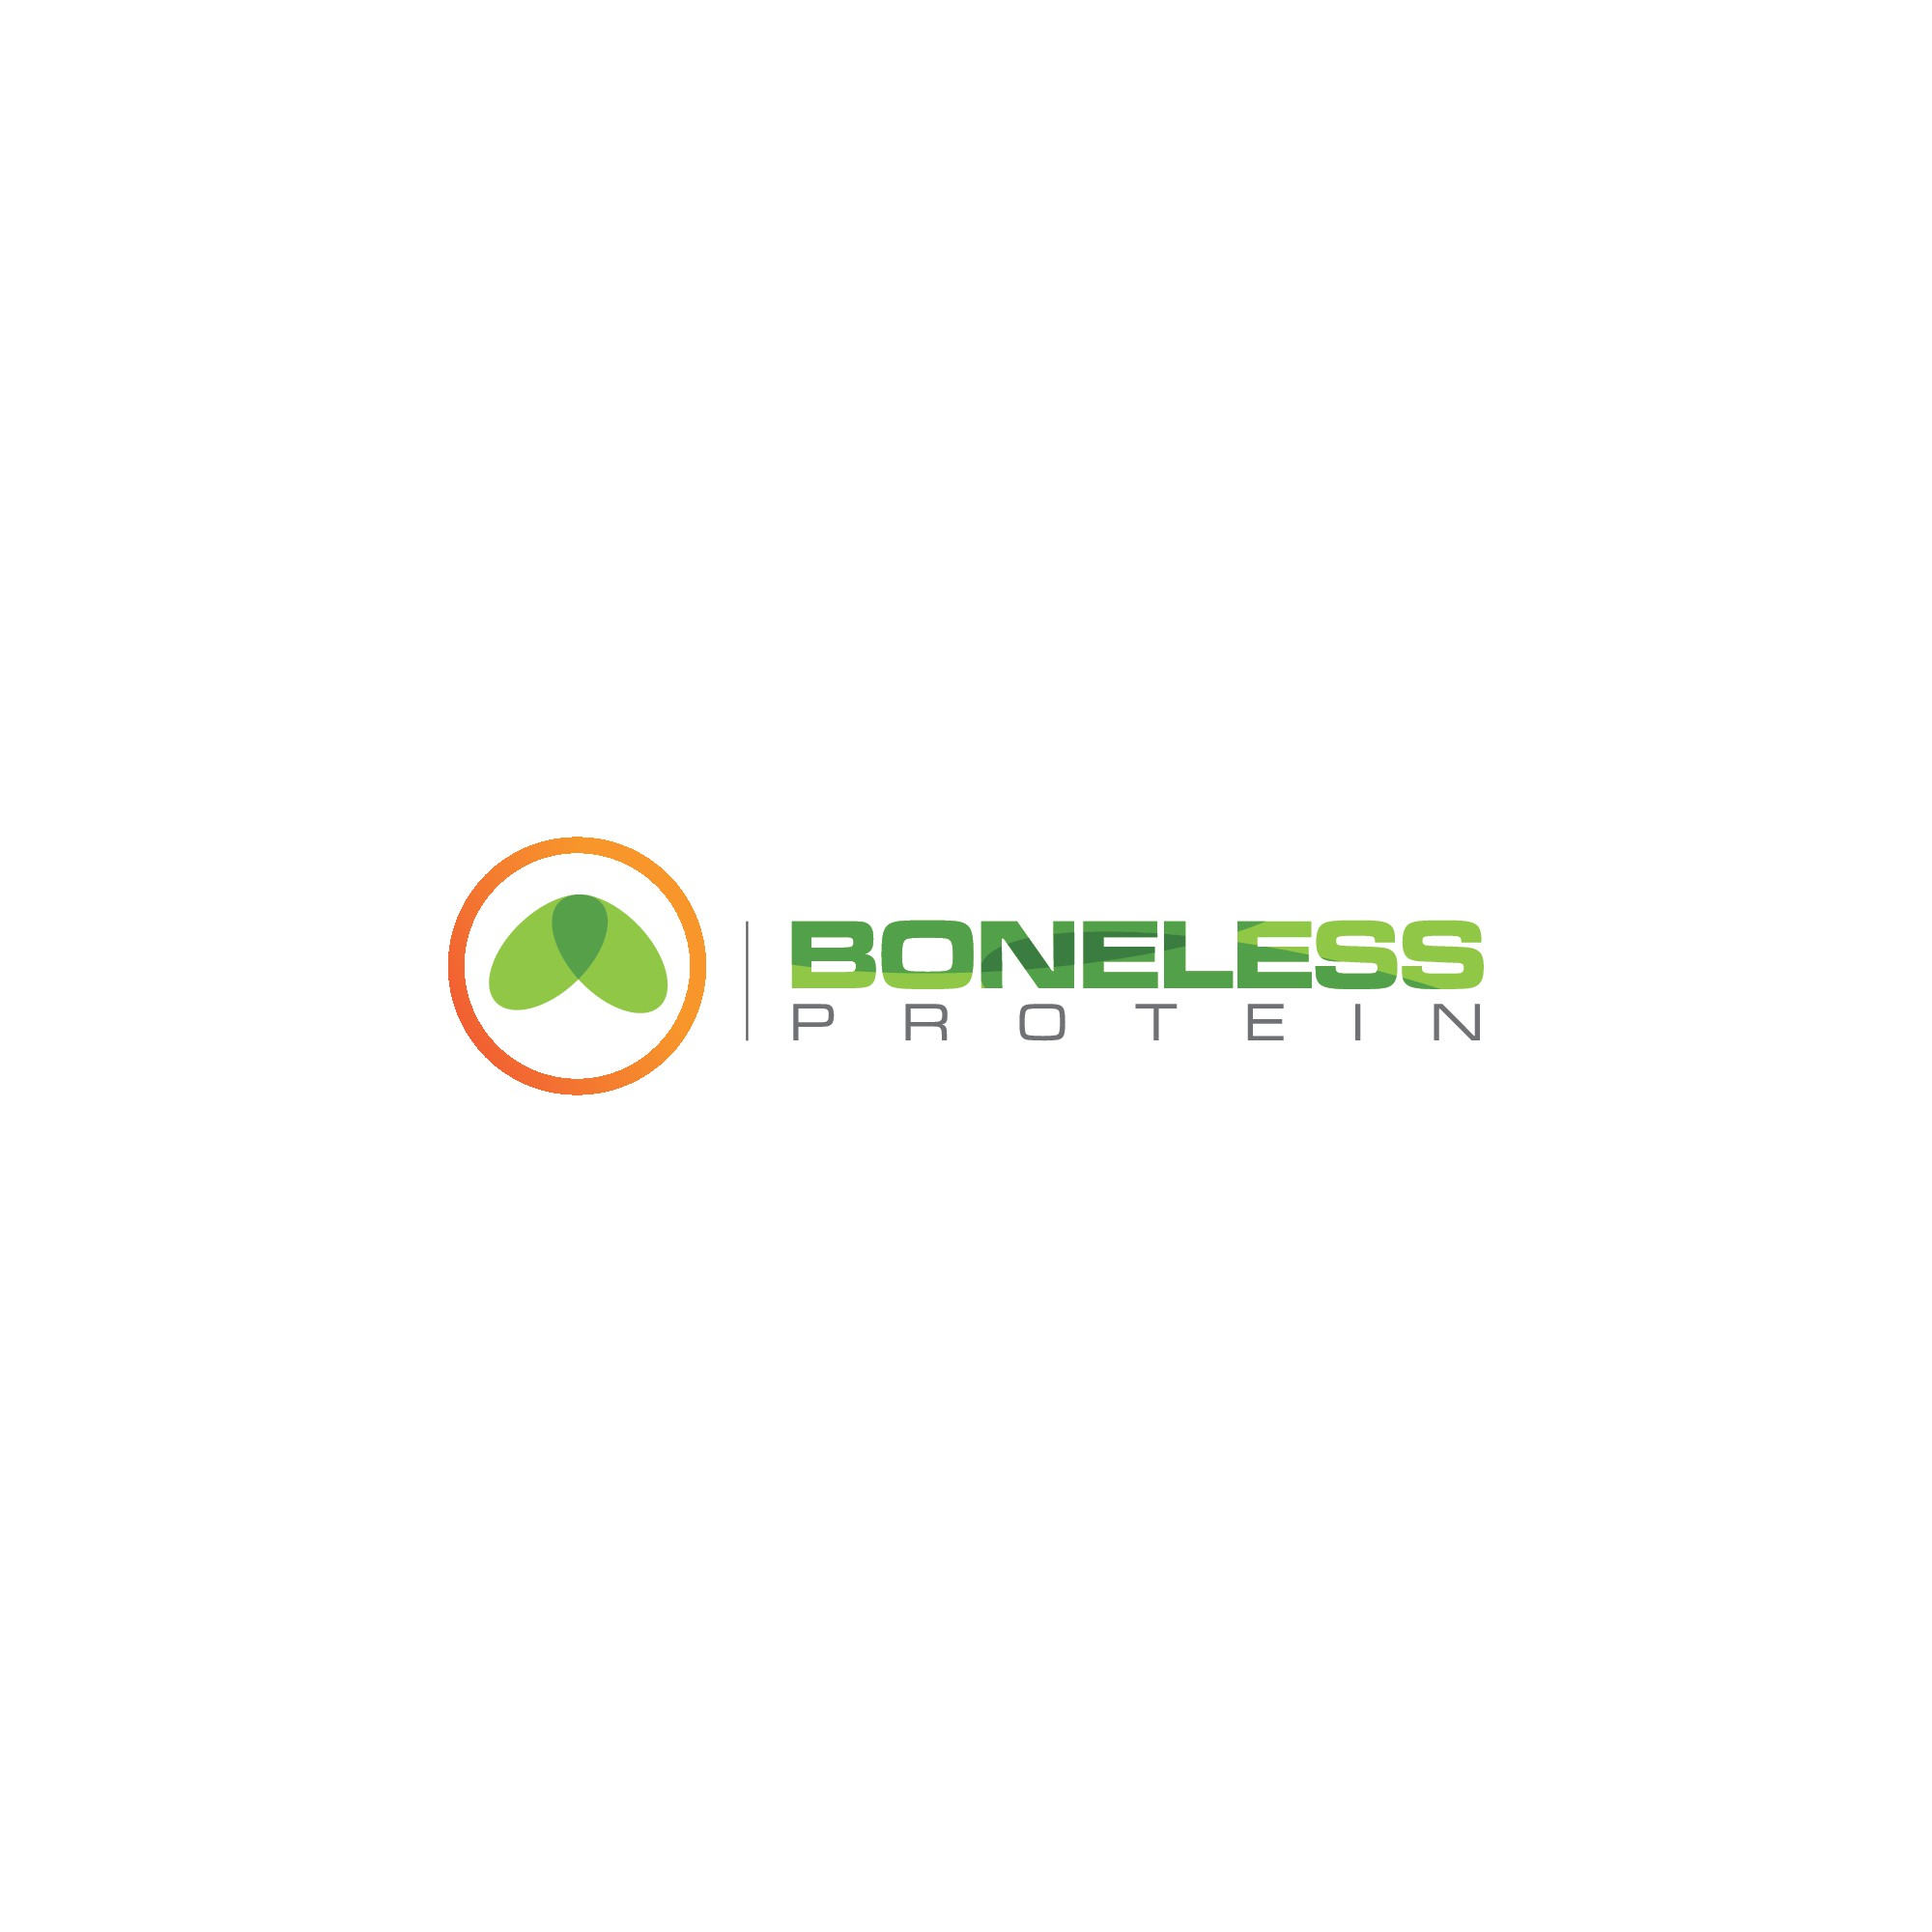 Boneless protein needs a face for the future of sustainable food